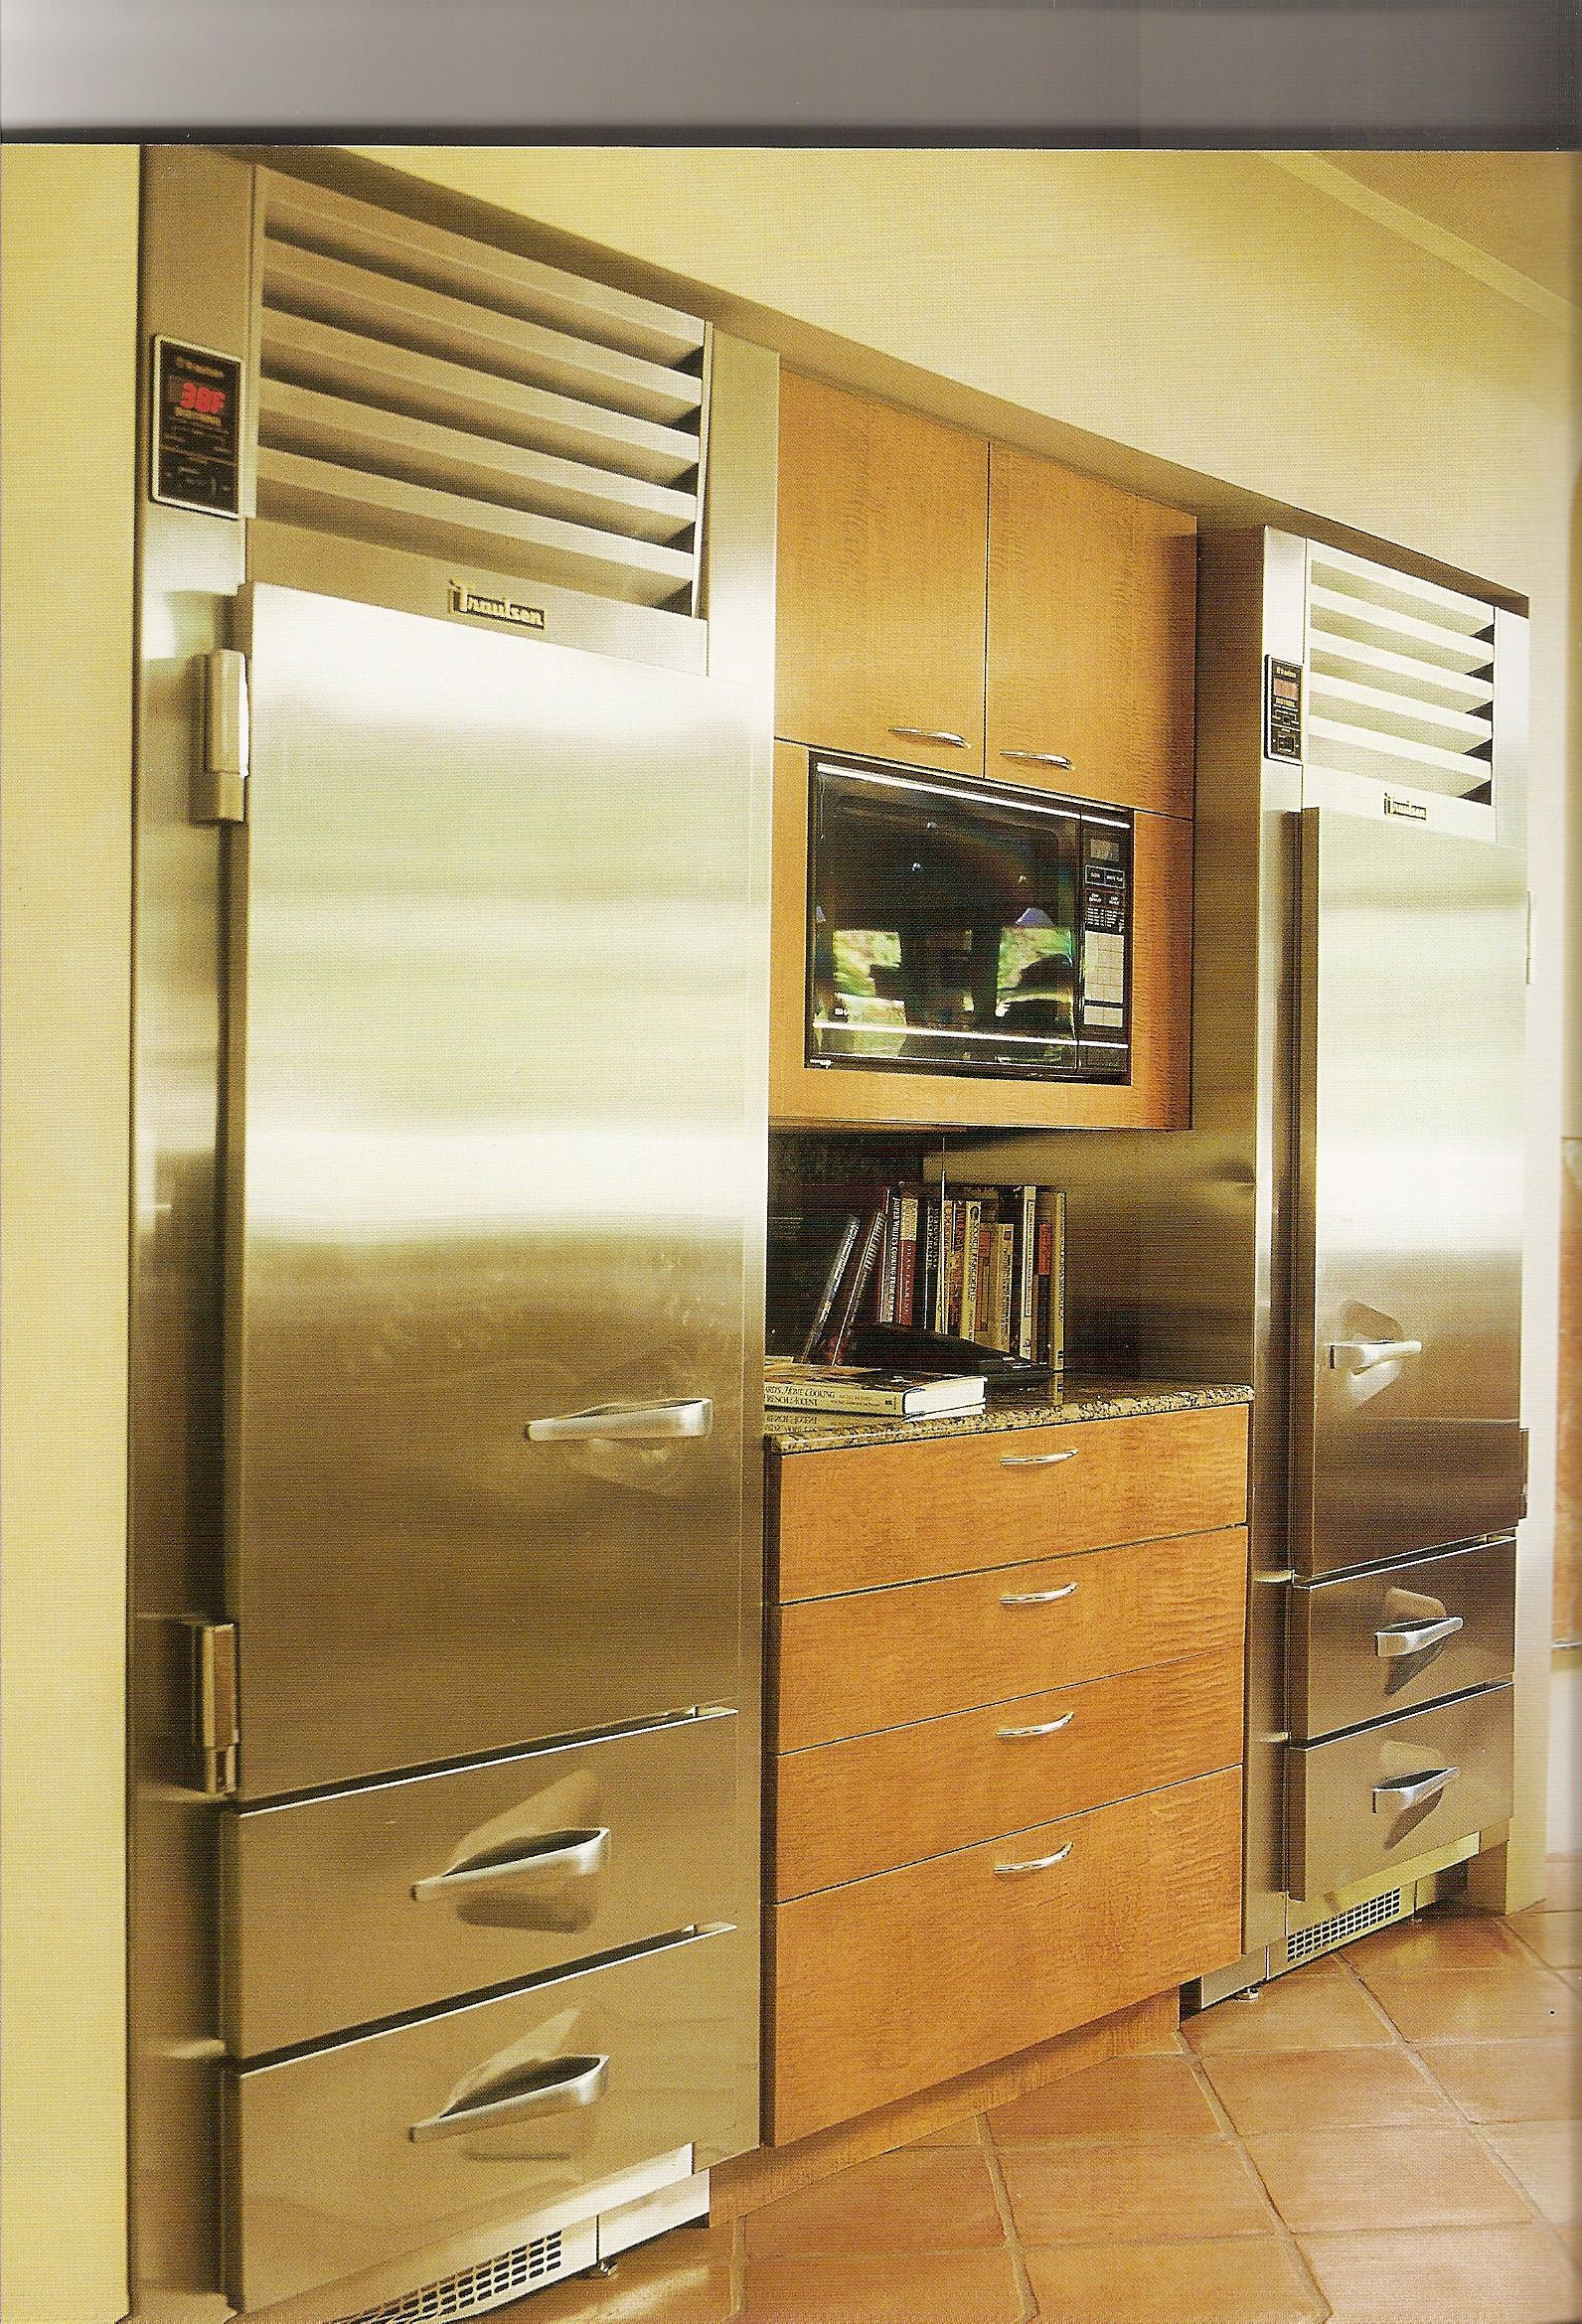 Separate Refrigerator And Freezer In